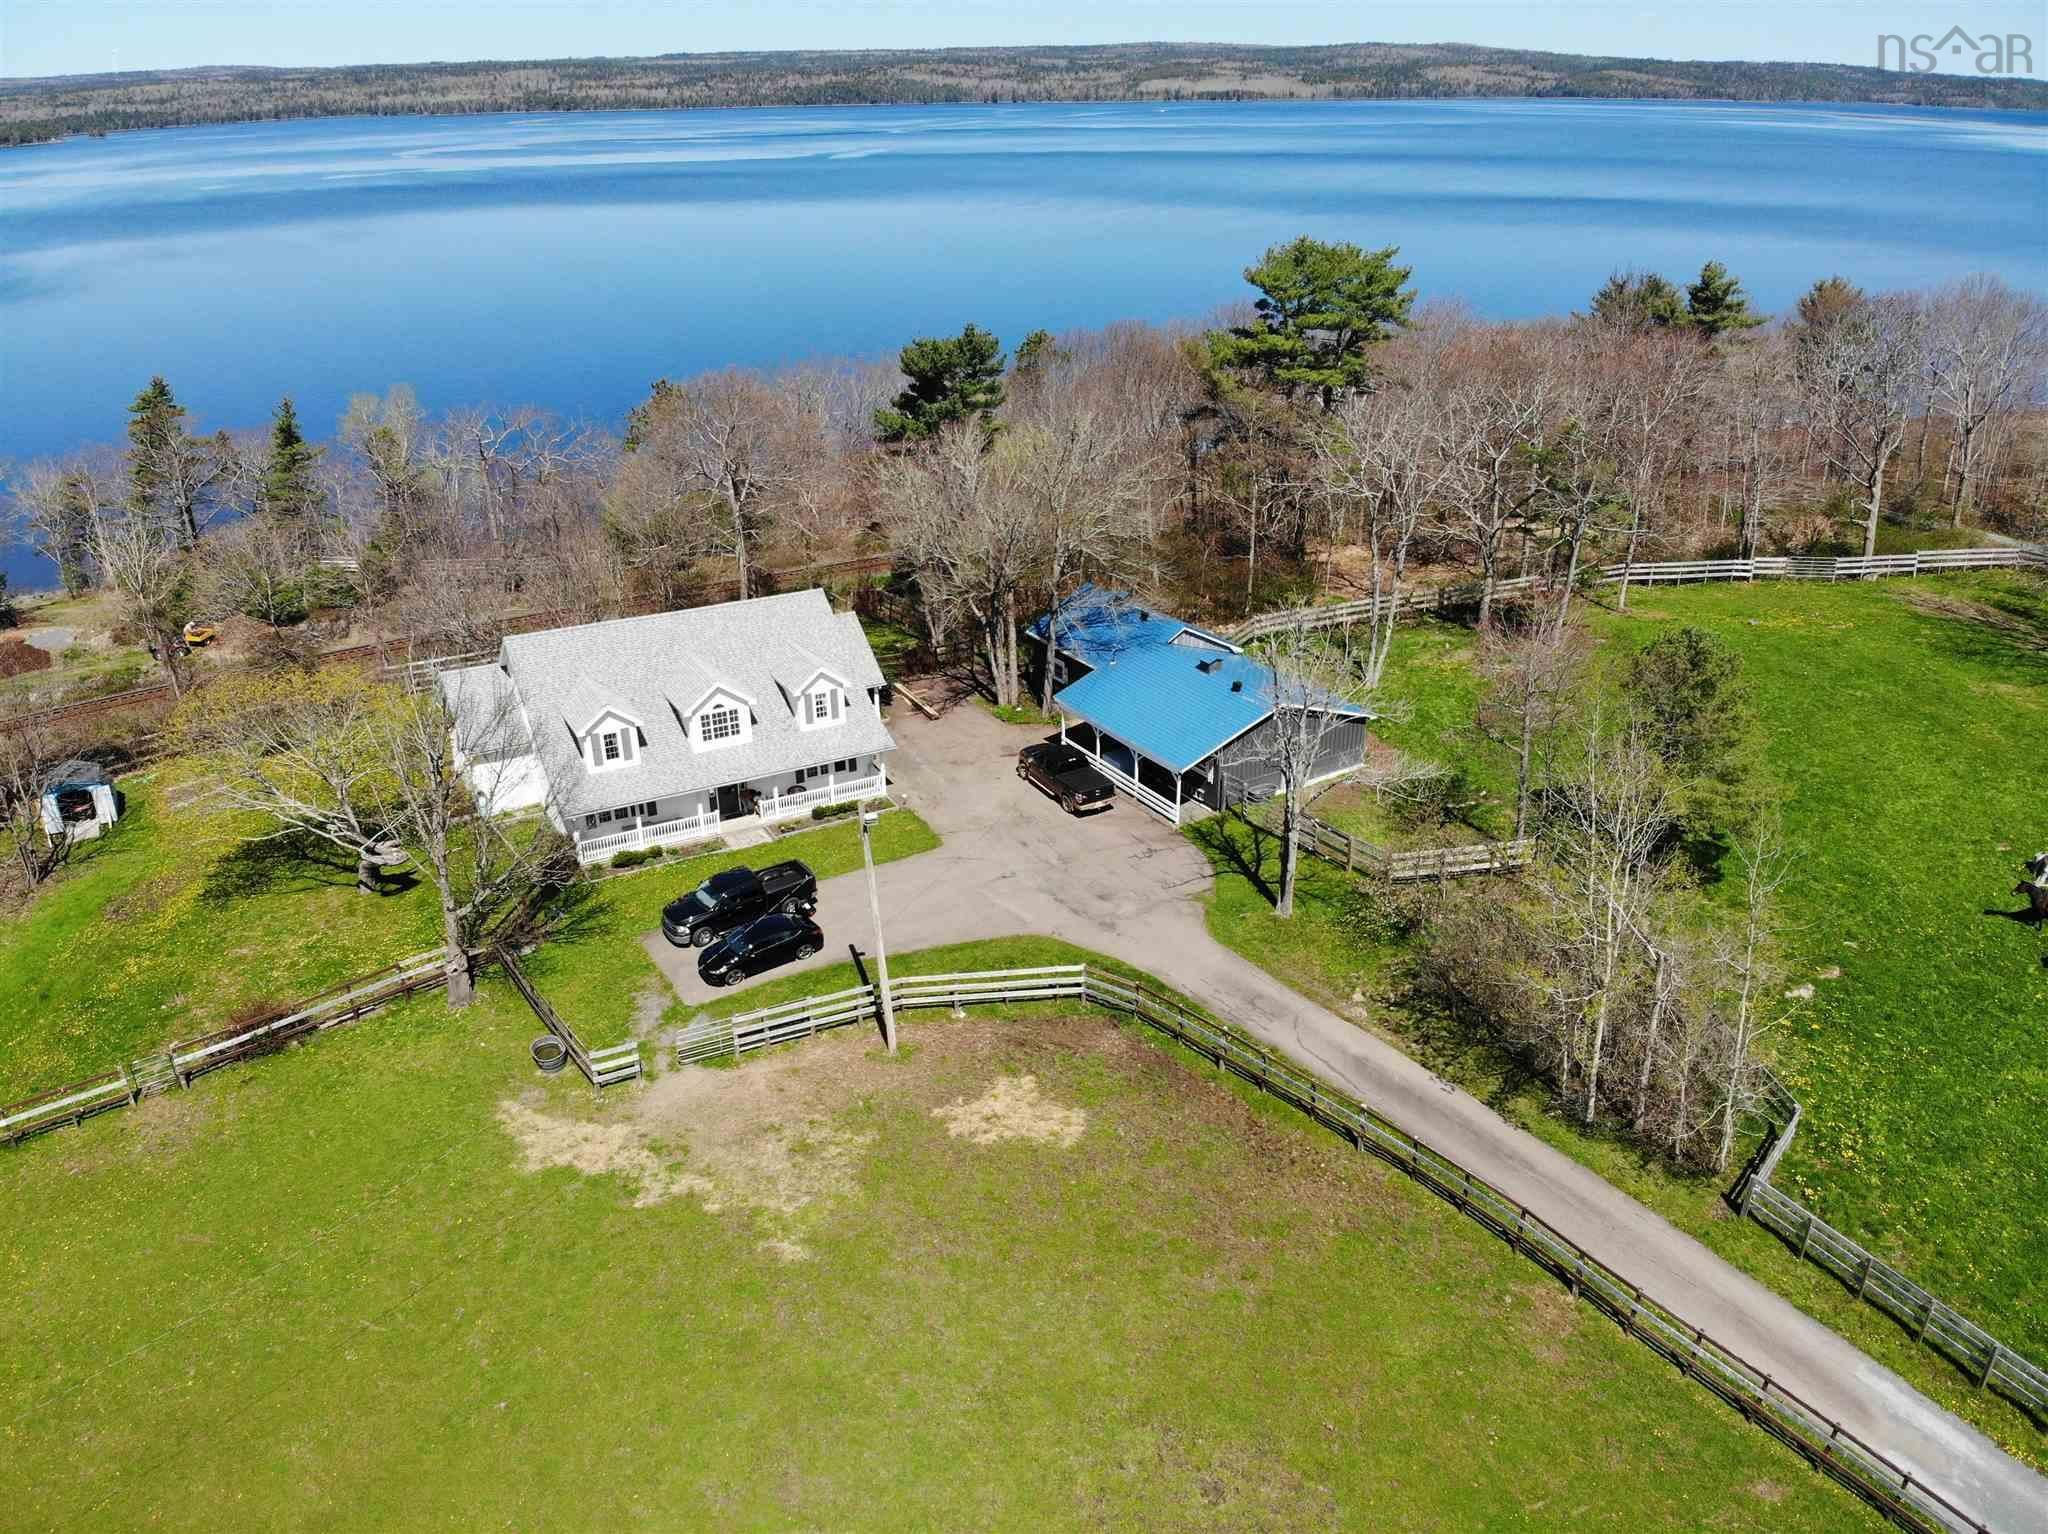 Photo 31: Photos: 5359 Highway 2 in Grand Lake: 30-Waverley, Fall River, Oakfield Residential for sale (Halifax-Dartmouth)  : MLS®# 202123644